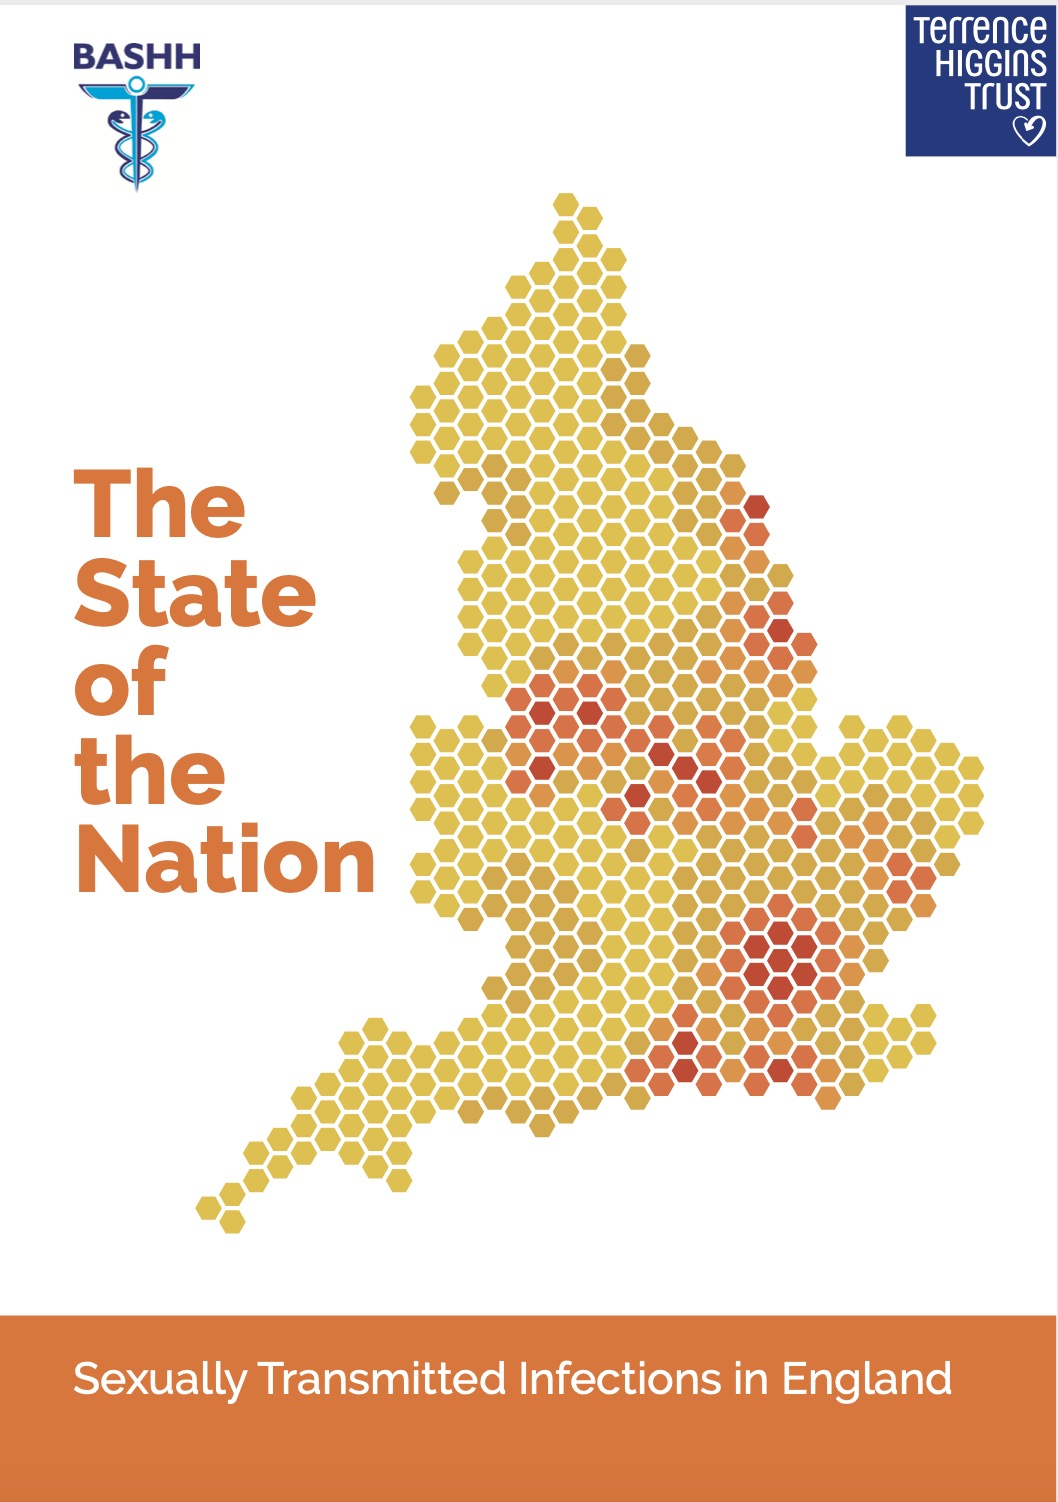 BASHH THT State of the Nation report cover